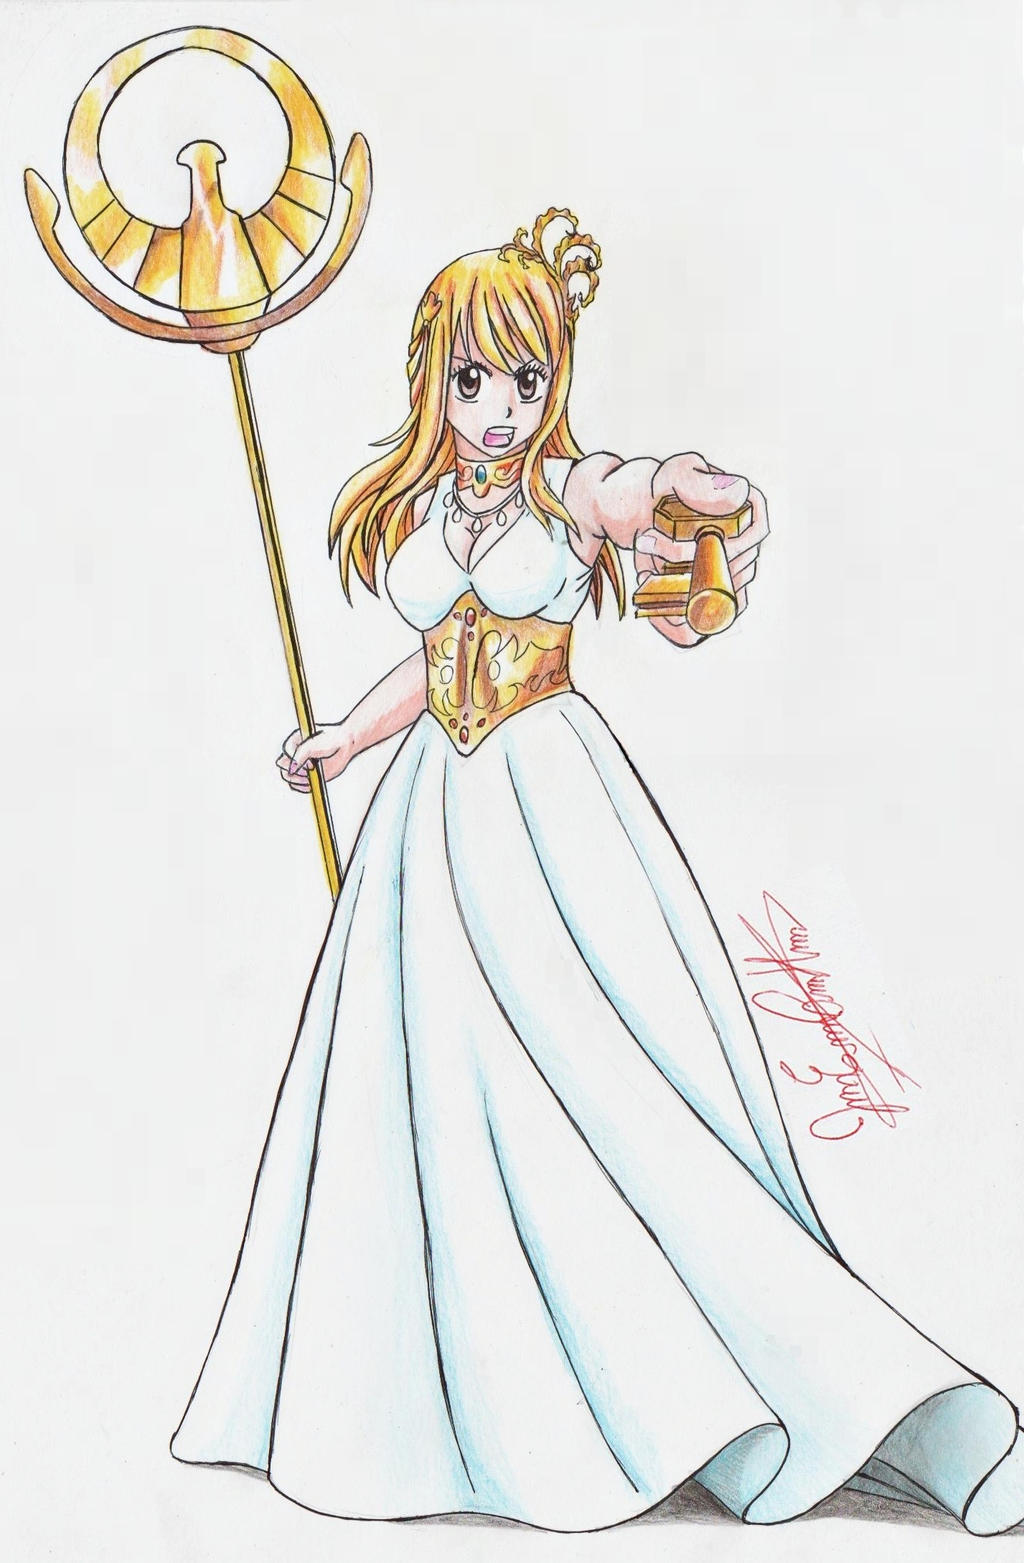 Fairy tail lucy athena by joakoart25 on deviantart - Lucy fairy tail drawing ...